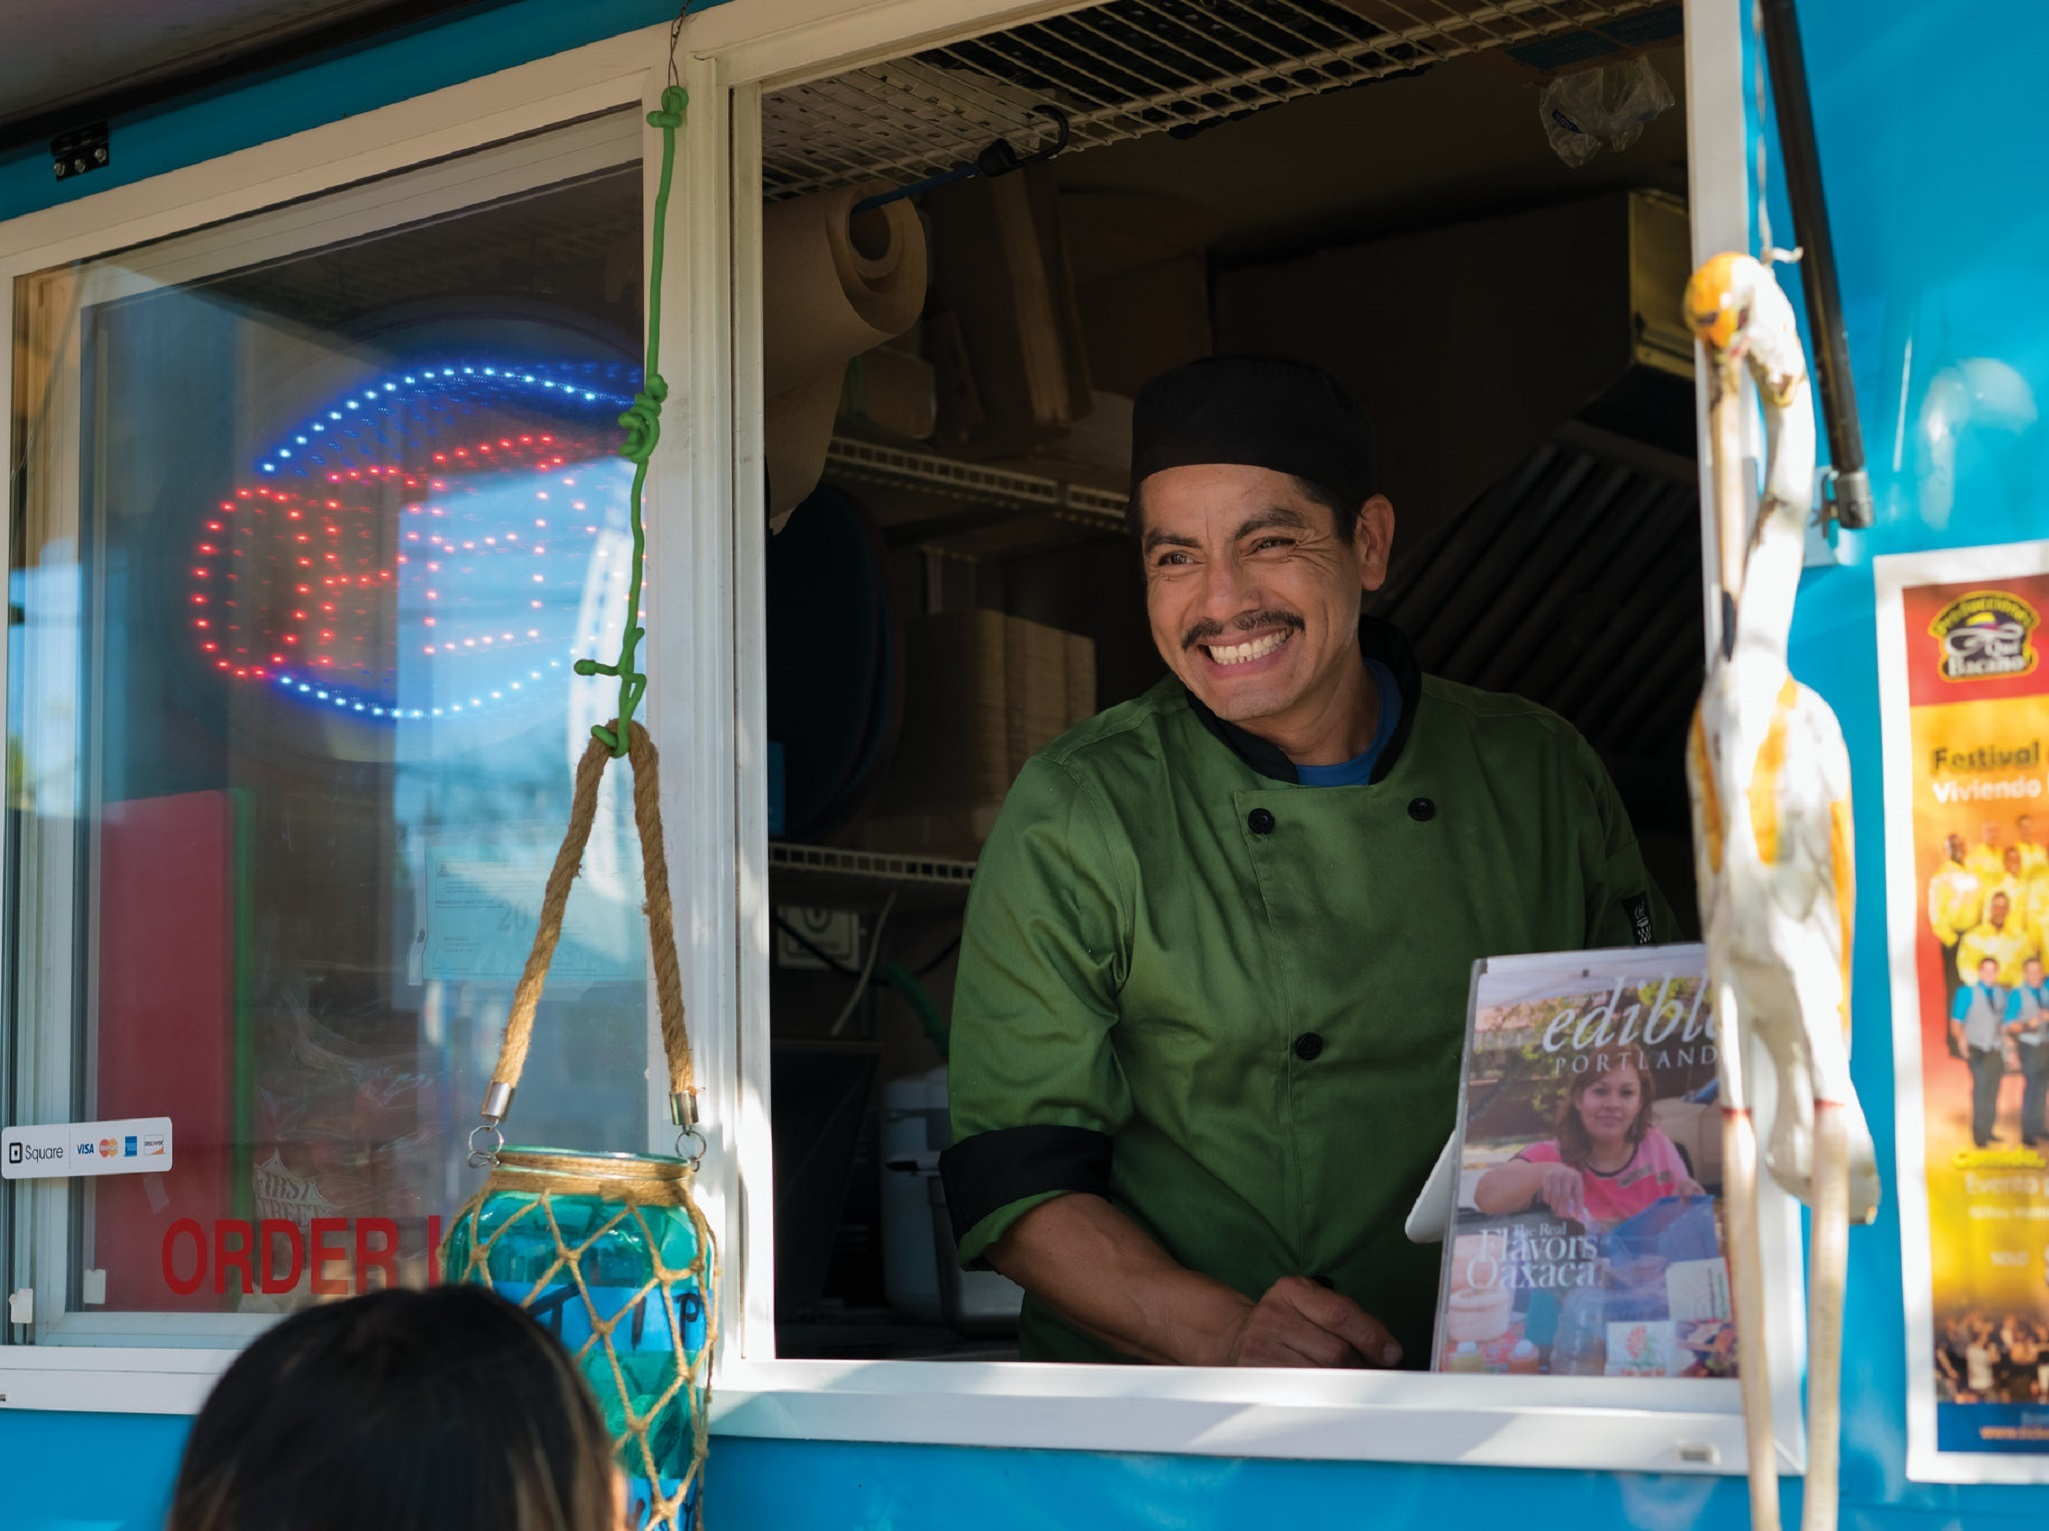 A chef smiling out the window of a food truck